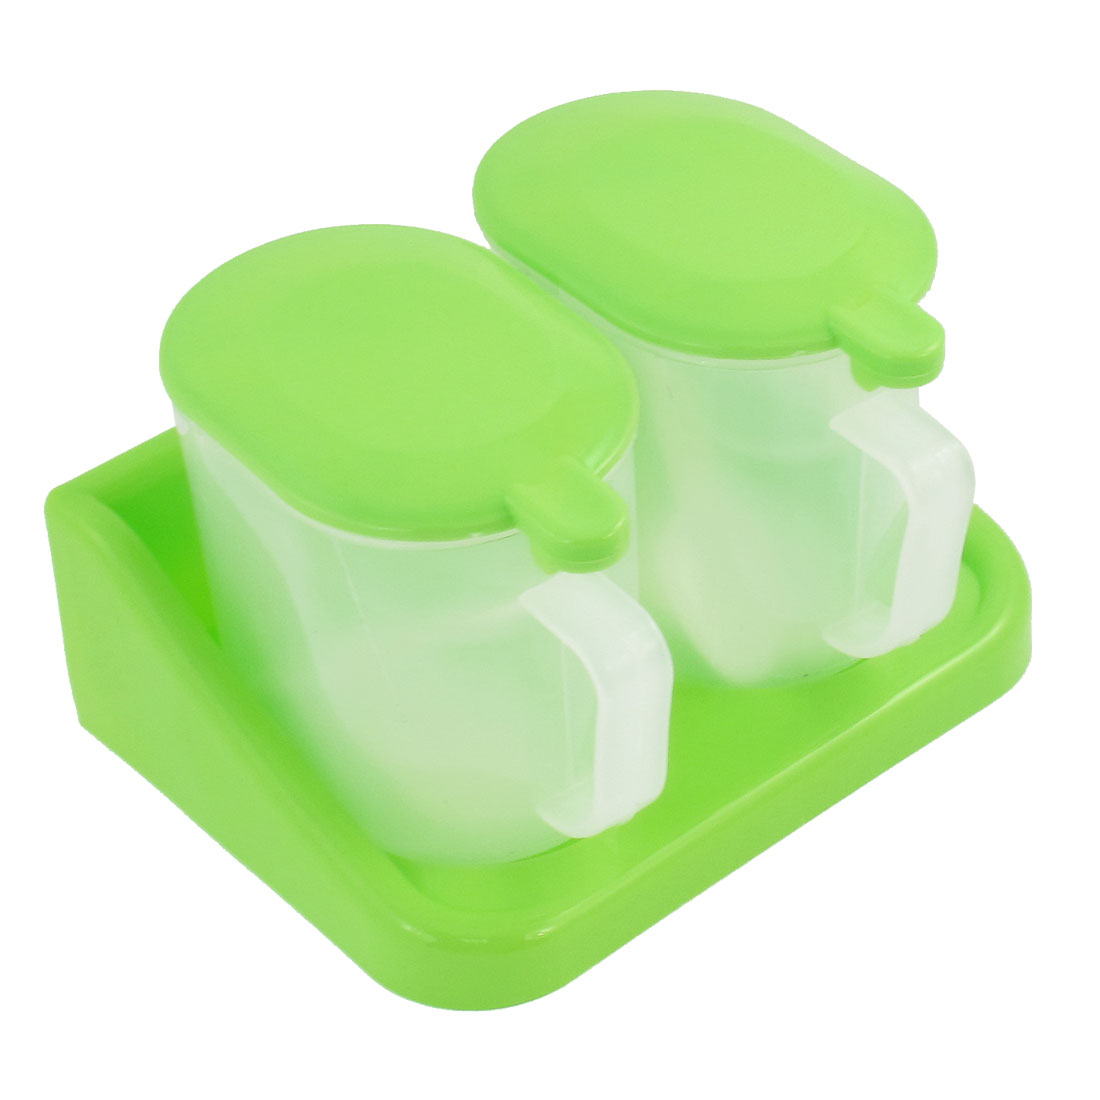 Kitchen Apple Green Clear Plastic Holder 2 in 1 Spices Dispenser Case Container